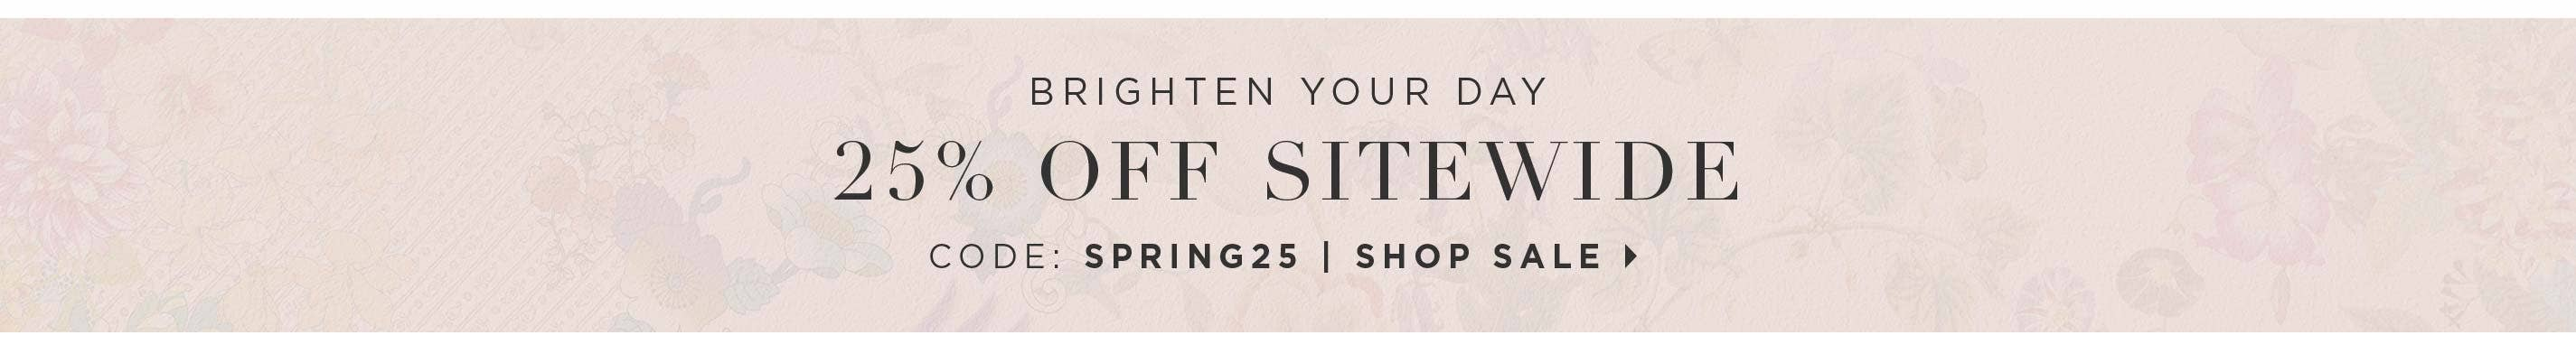 Brighten Your Day - 25% off Sitewide - Code: SPRING25 - Shop sale